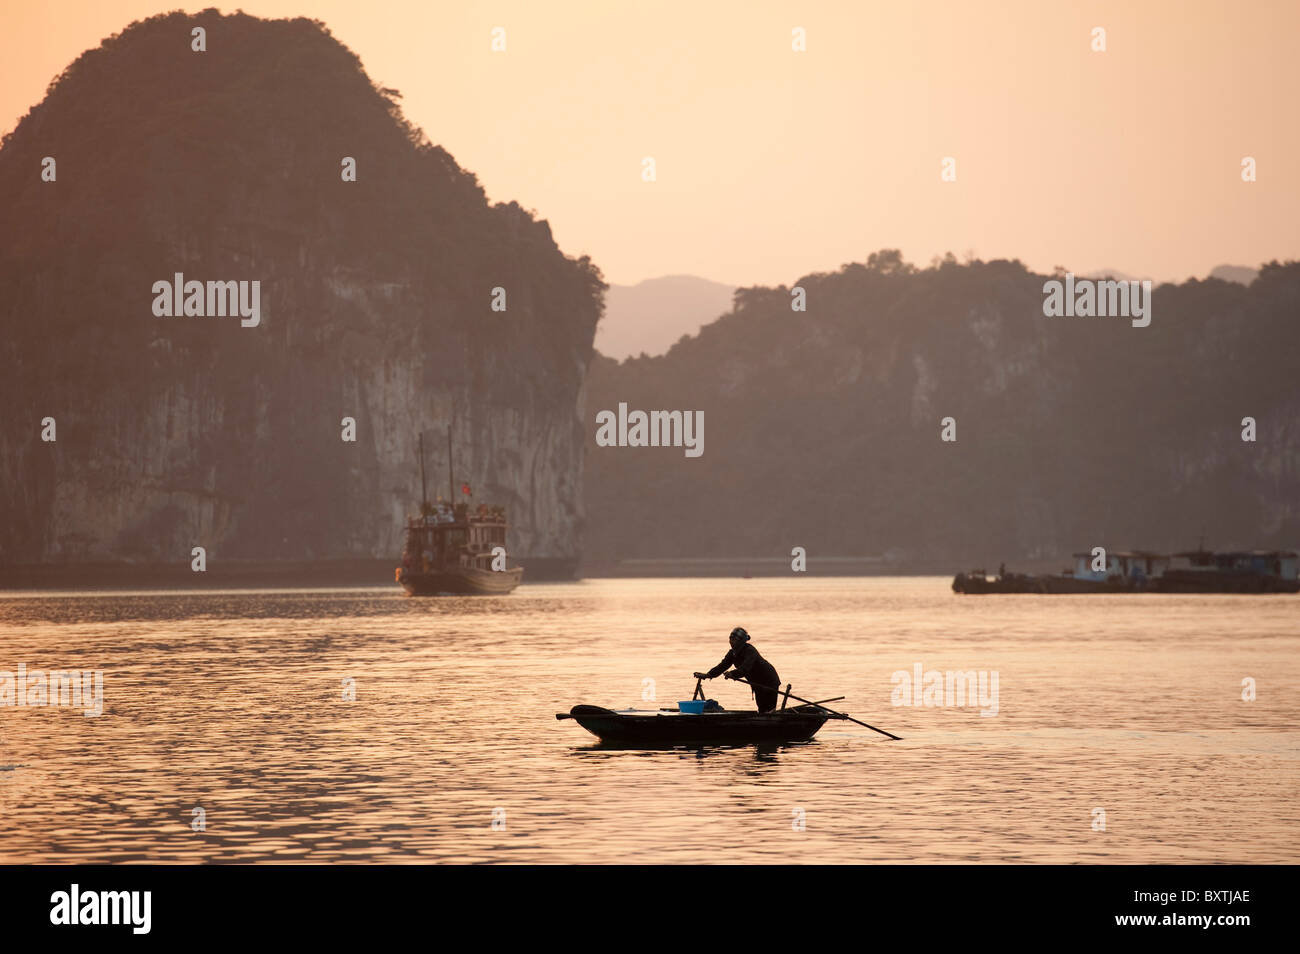 Canoe in Halong Bay, Vietnam - Stock Image